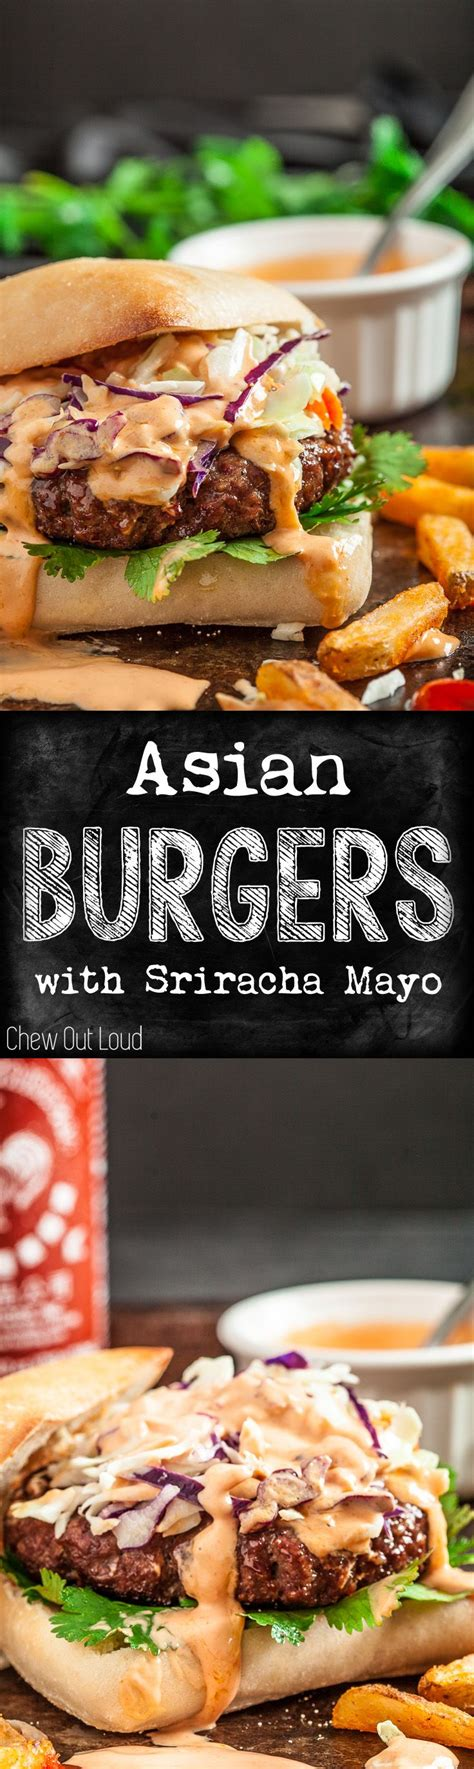 how to make sriracha mayo 1000 images about lunch and dinner on pinterest pork